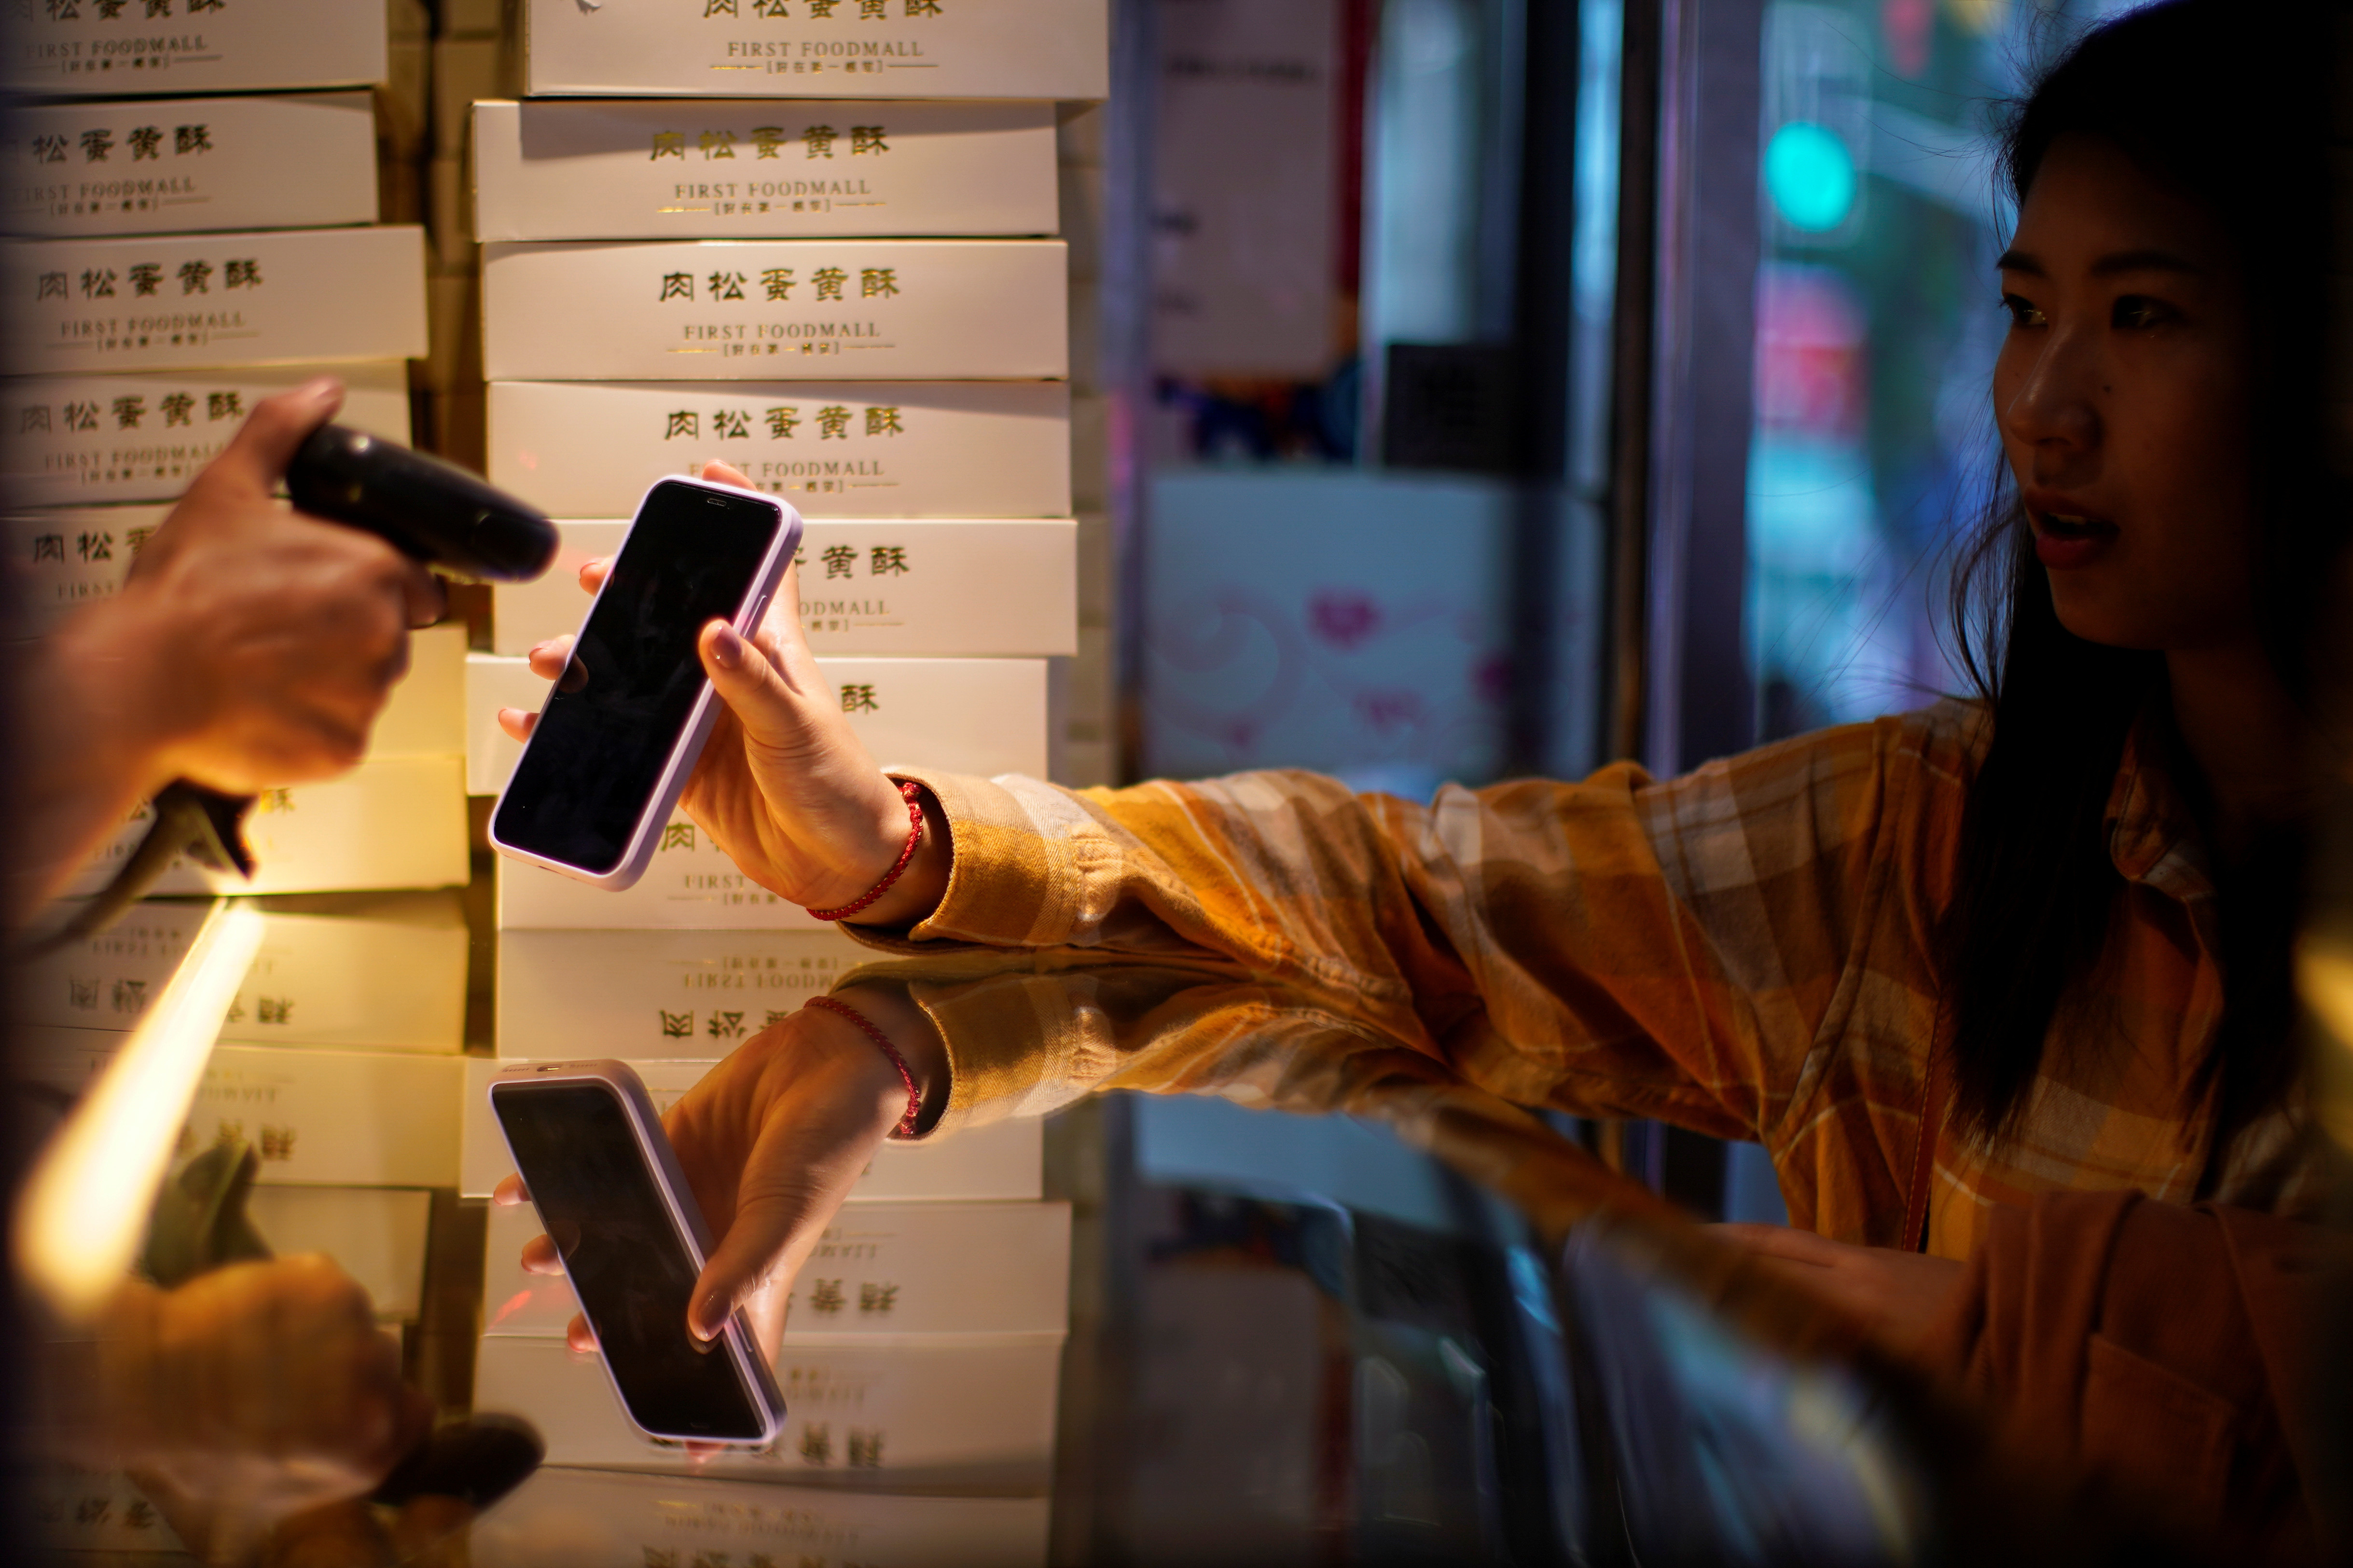 A woman gets her phone's QR code of the digital payment services scanned at a food shop, following the coronavirus disease (COVID-19) outbreak, in Shanghai, China October 10, 2020. REUTERS/Aly Song - RC2MFJ9WRM74